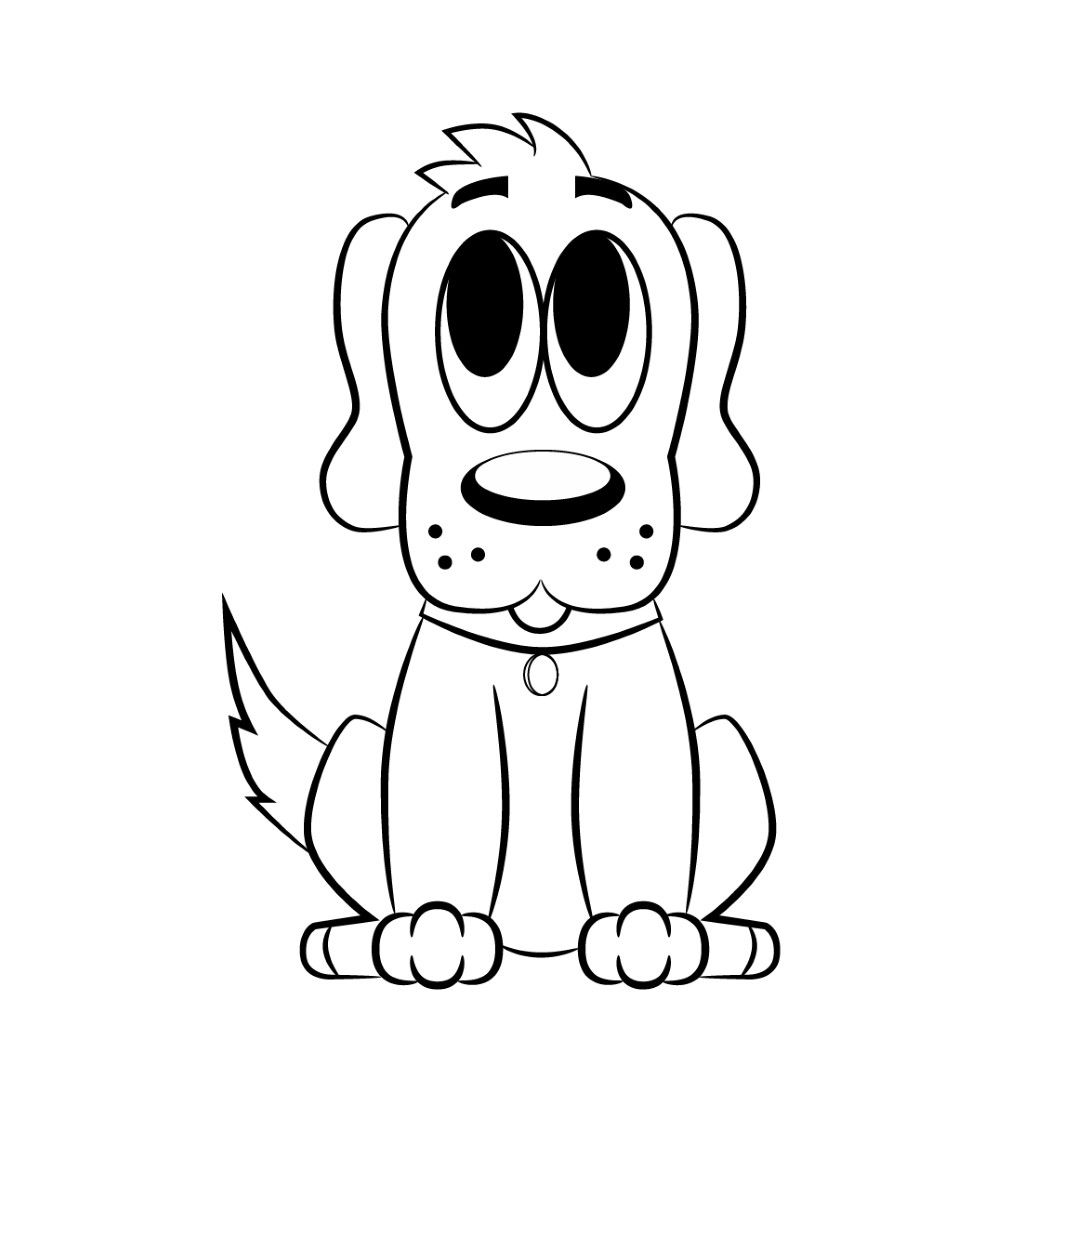 How To Draw A Cartoon Dog Cartoon Dog Drawing Dog Coloring Page